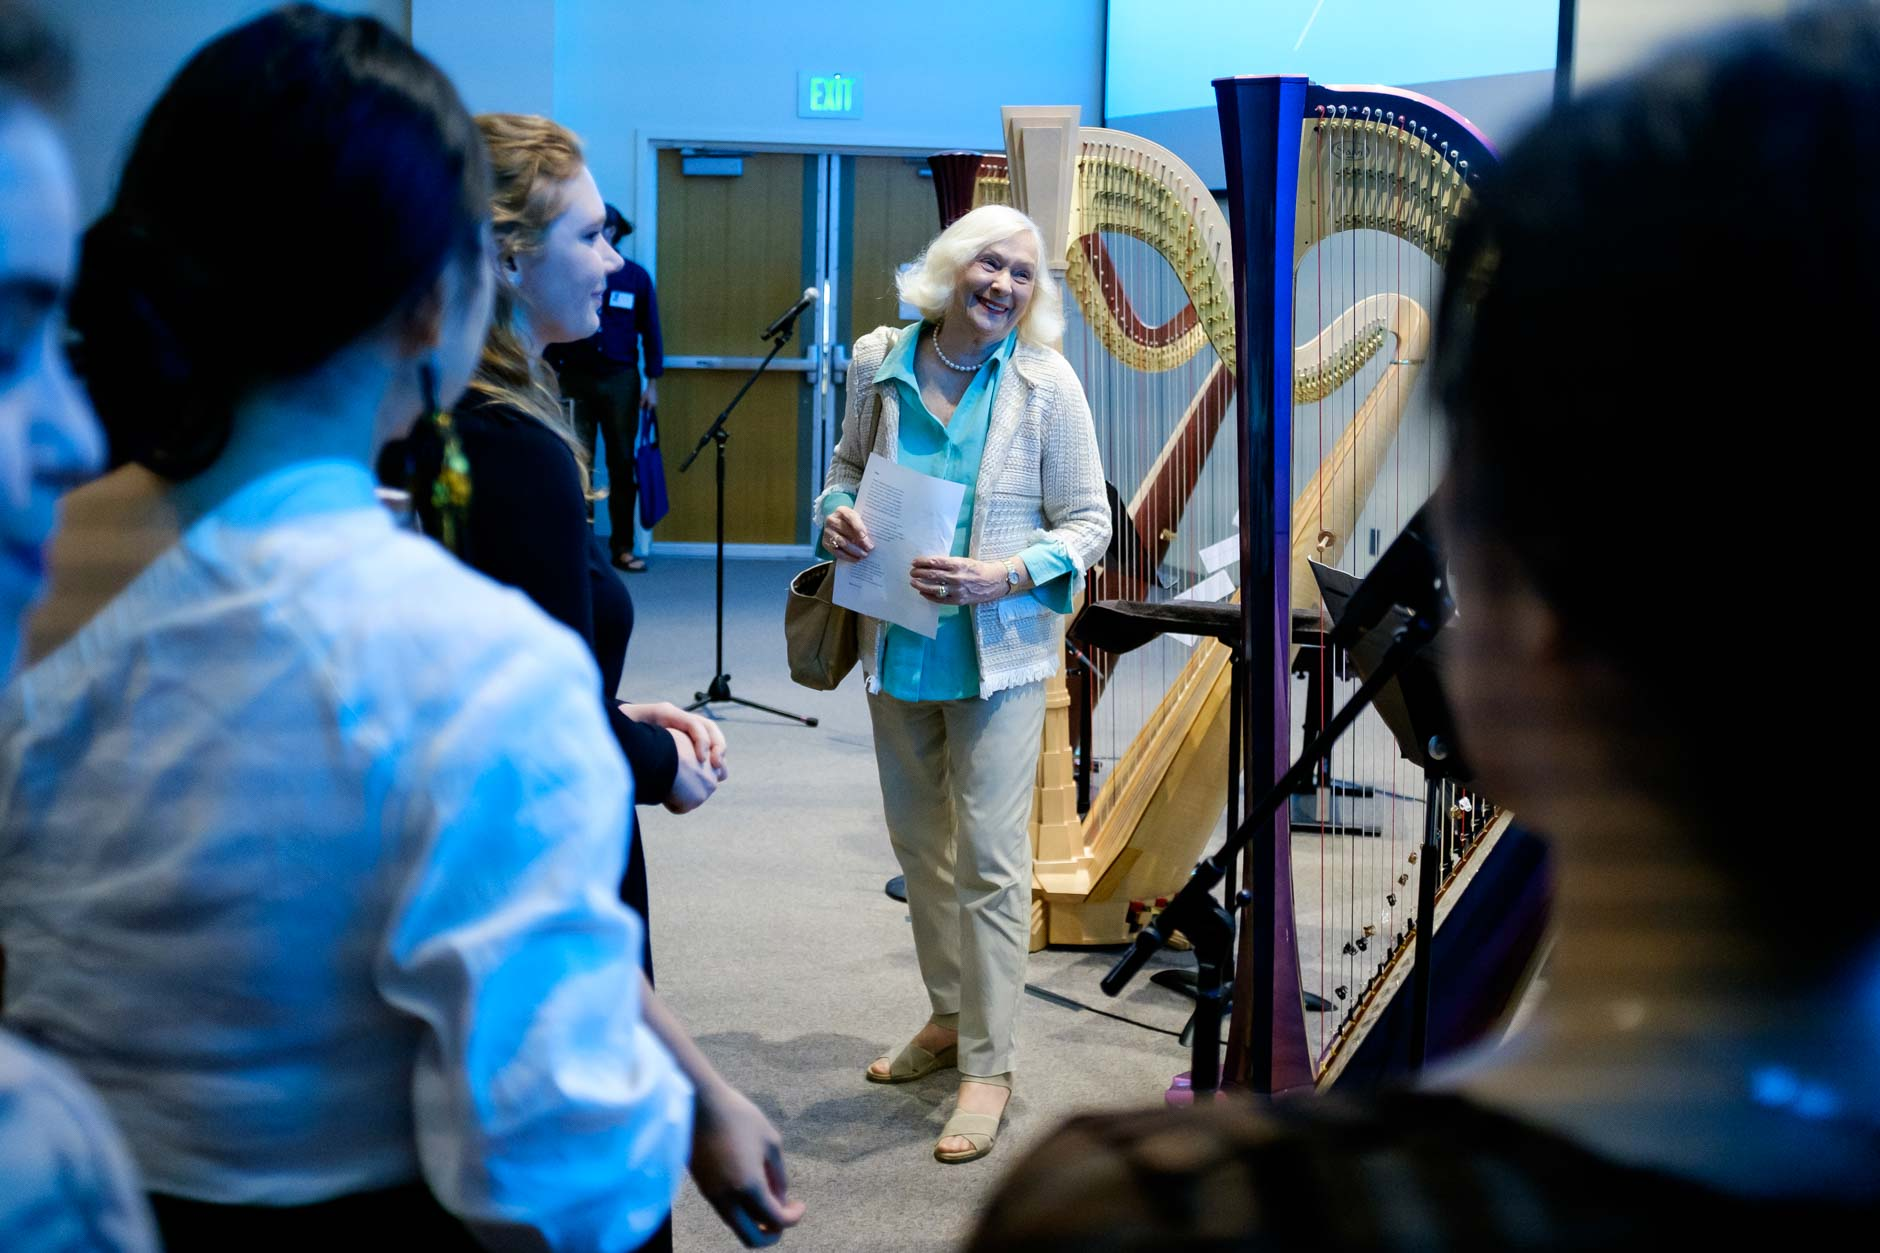 USA International Harp Competition Founder and Artistic Director Susann McDonald speaks with Composition Forum performers before the forum at the 11th USA International Harp Competition at Indiana University in Bloomington, Indiana on Monday, July 8, 2019. (Photo by James Brosher)